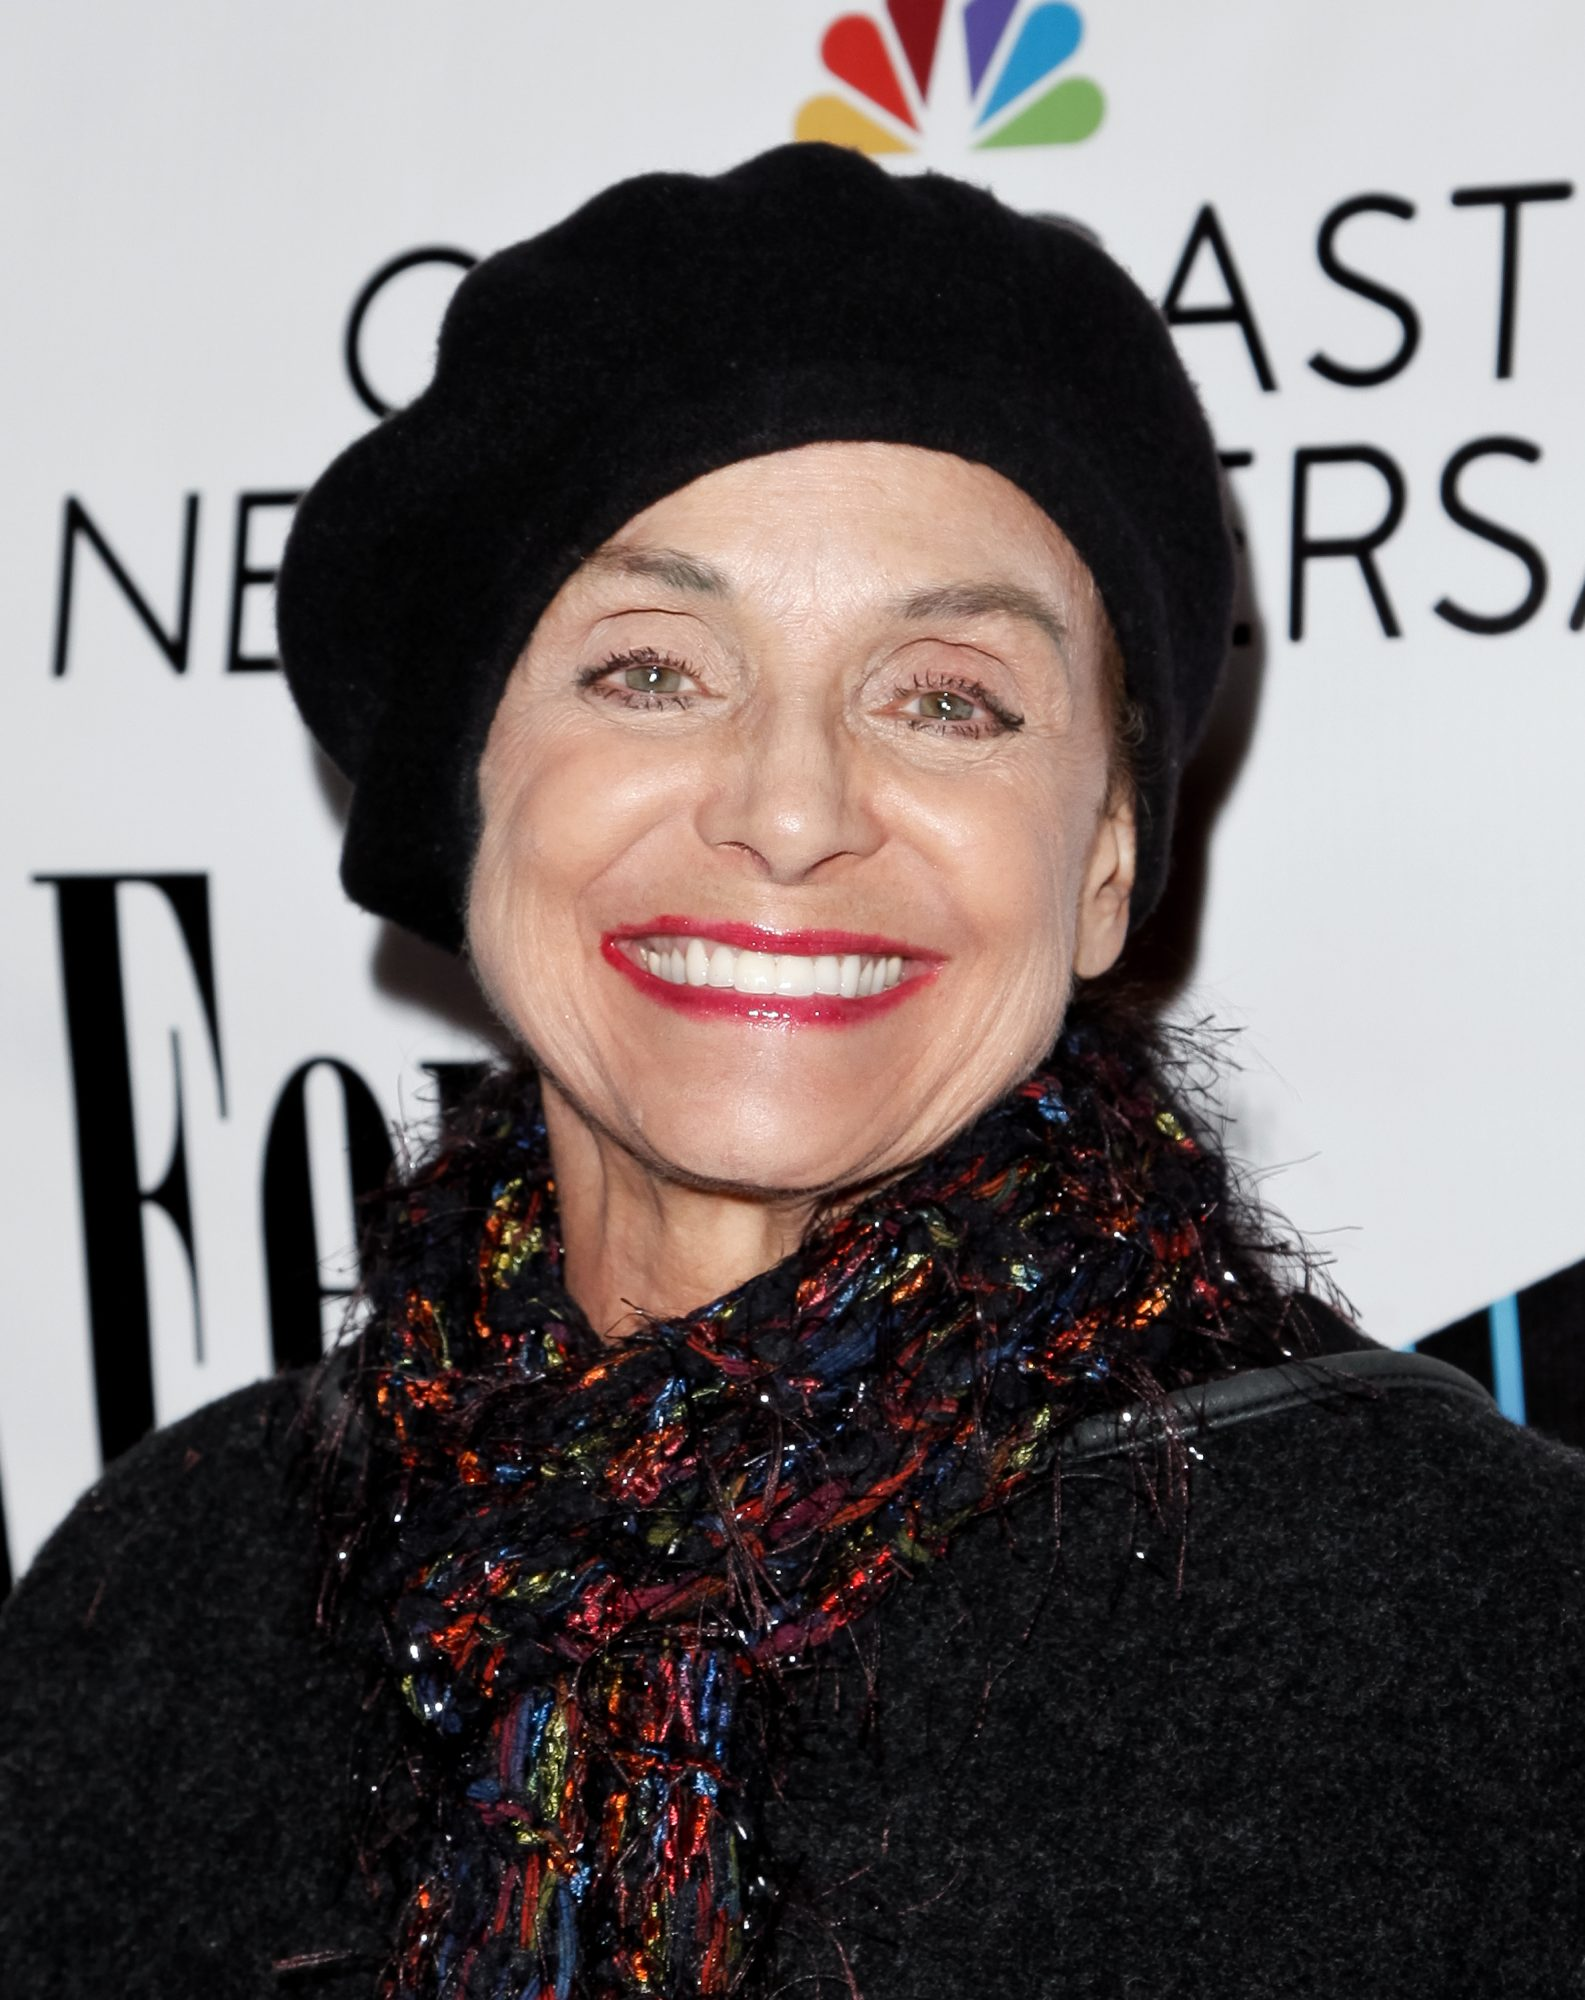 Valerie Harper Tells PEOPLE How She Survived a Fatal Cancer Diagnosis: 'It's a Miracle'